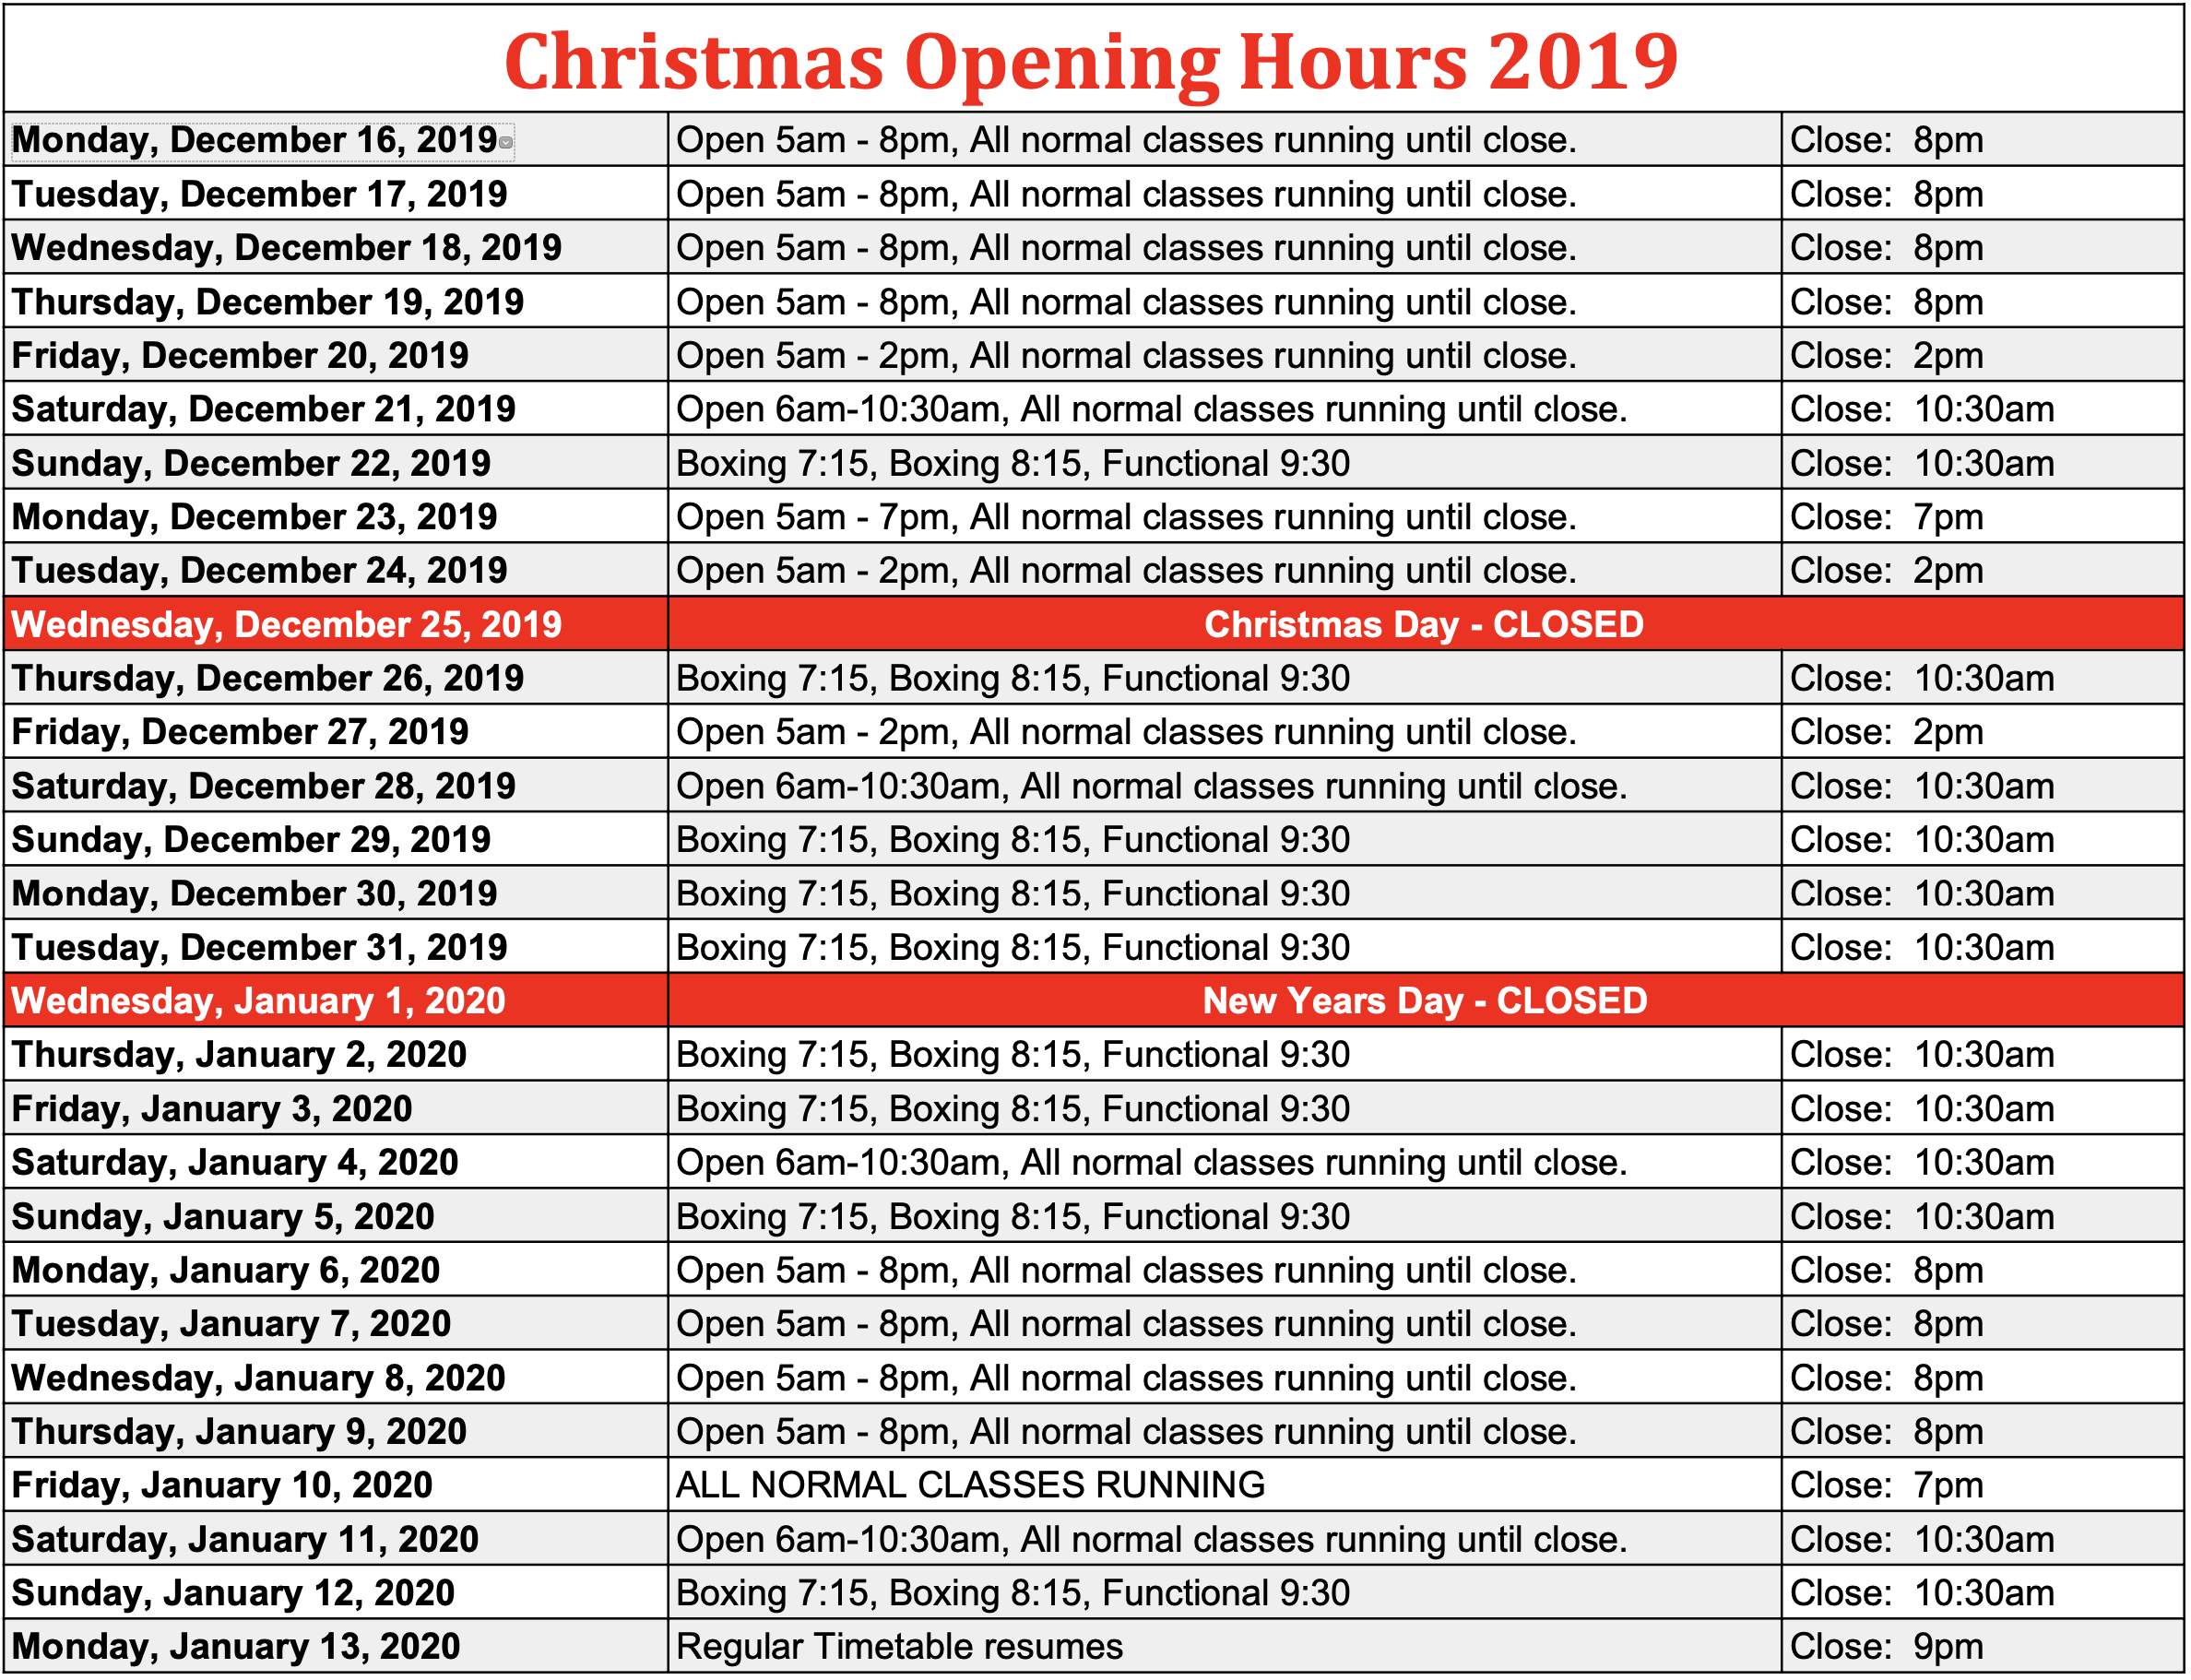 Christmas Opening Hours, 2019